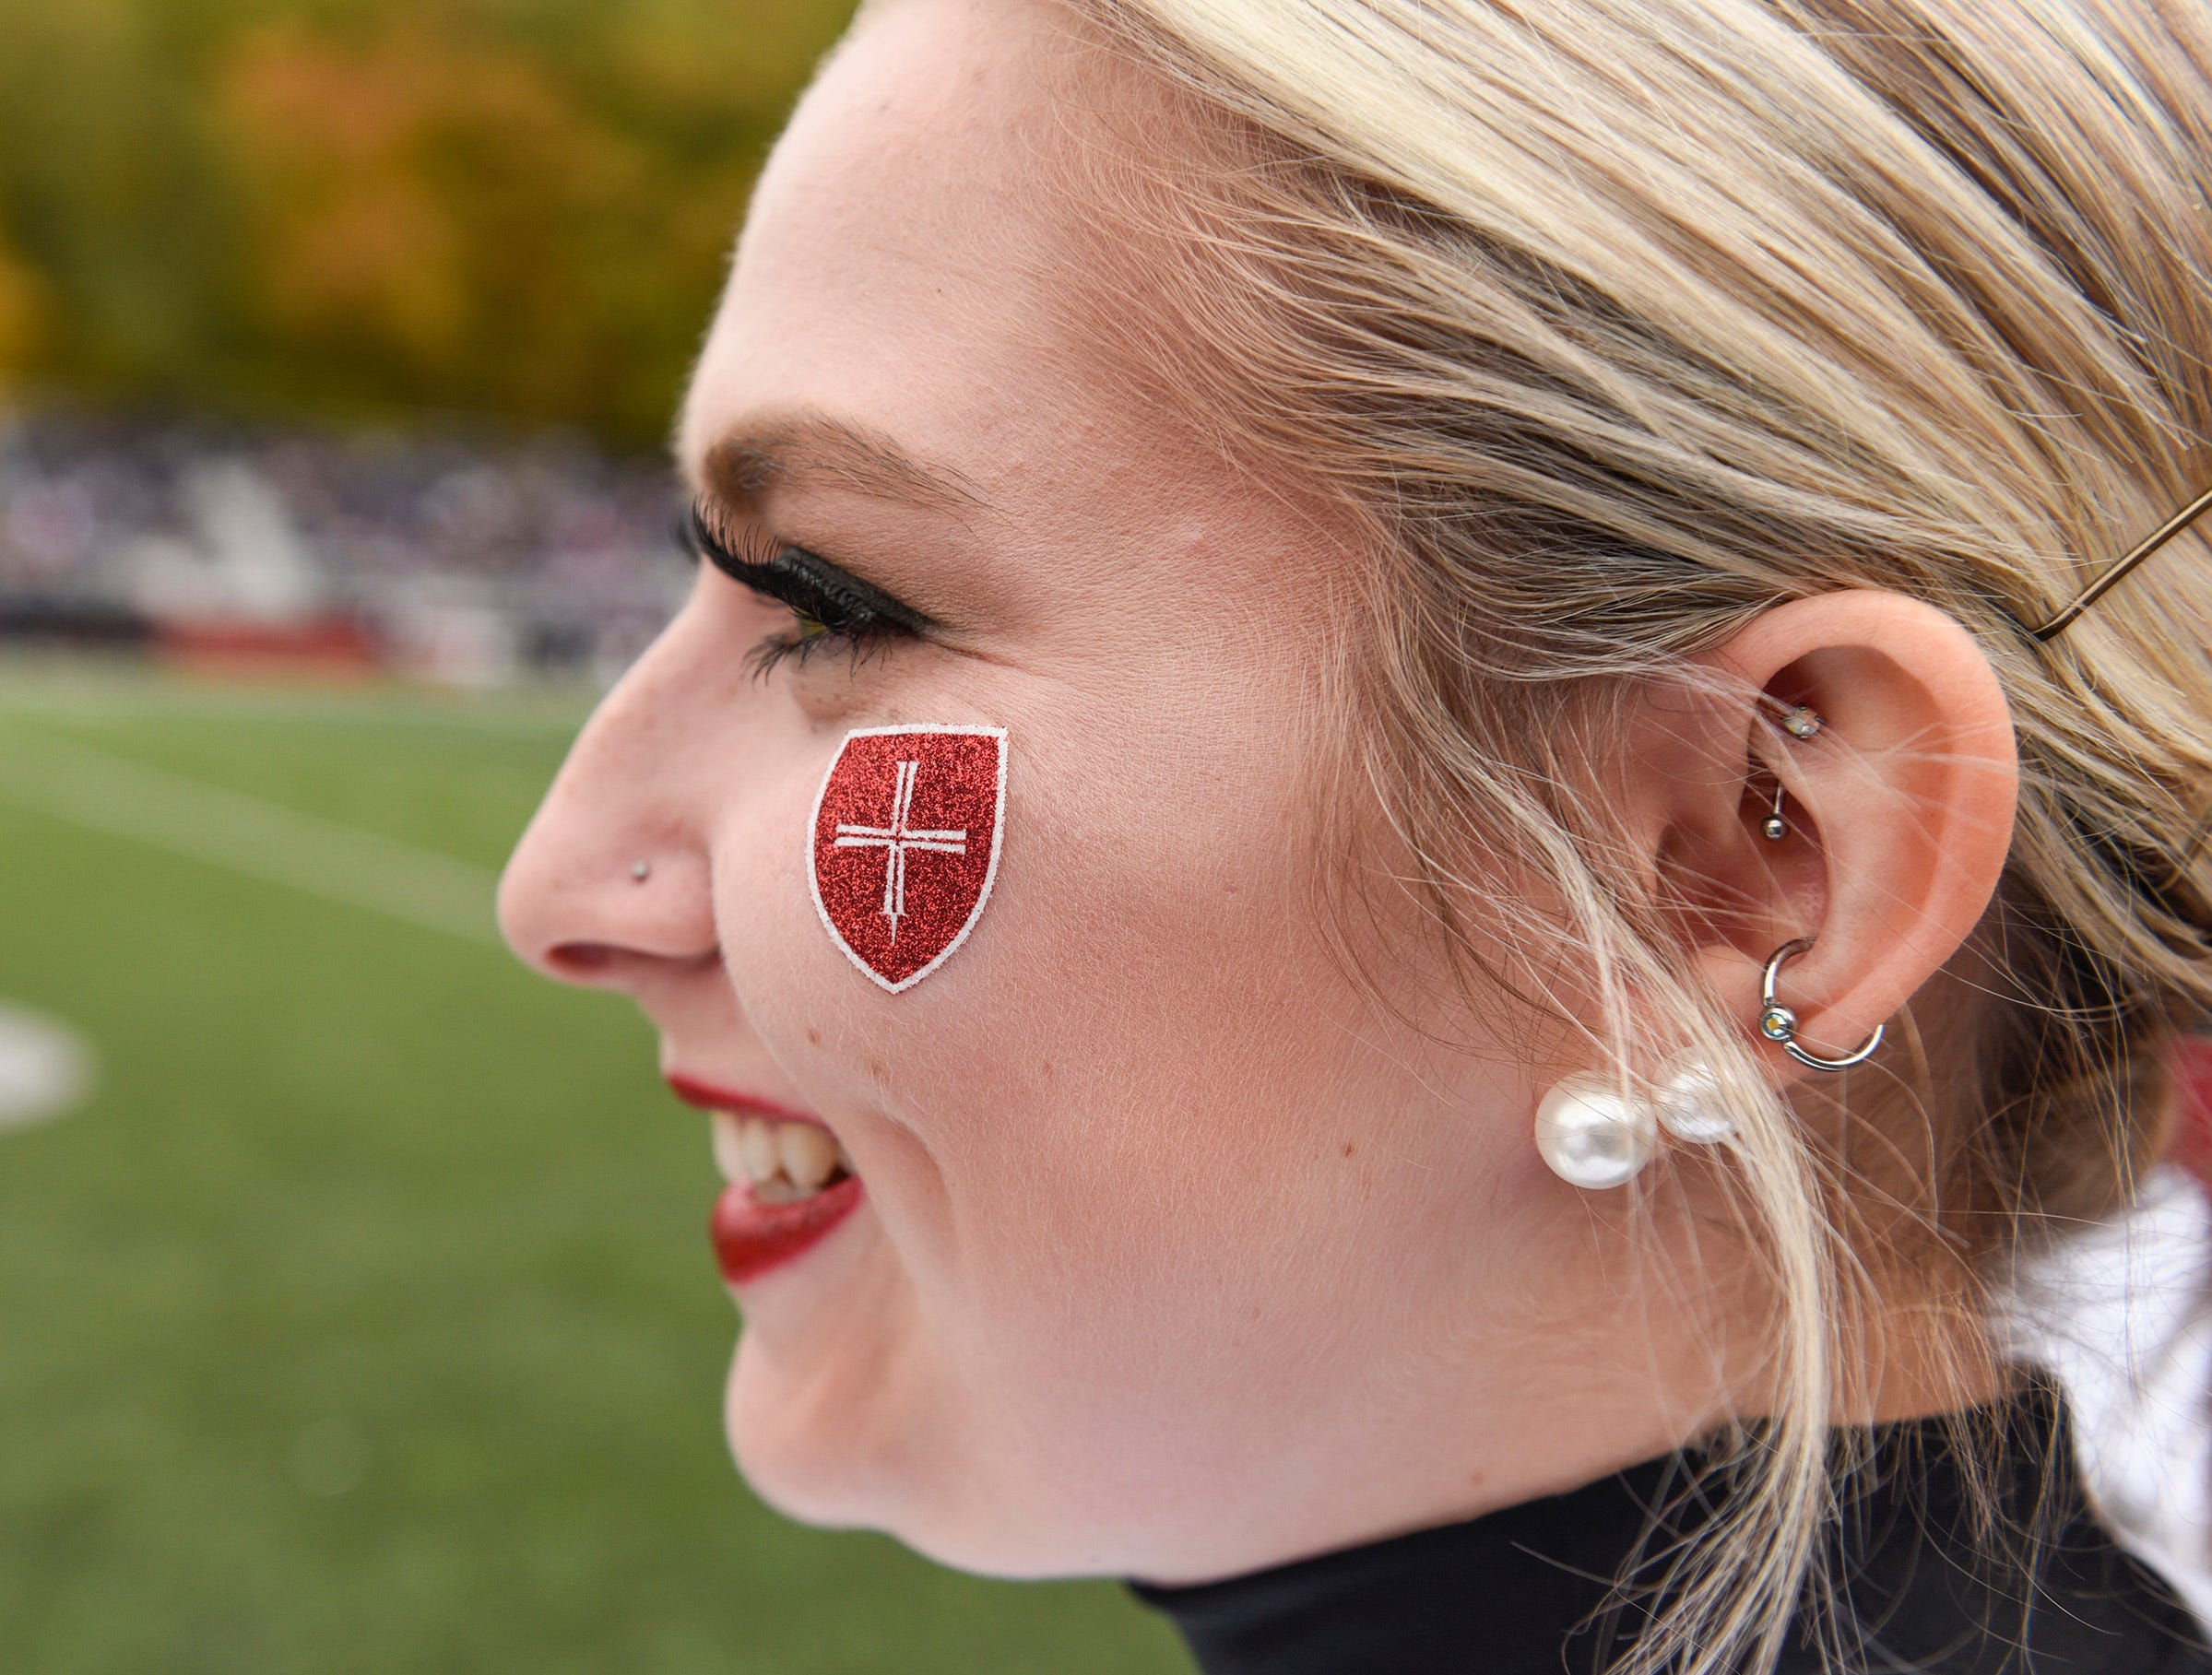 A College of St. Benedict dance team member watches for the St. John's football team to come on the field Saturday, Oct. 13, in Collegeville.